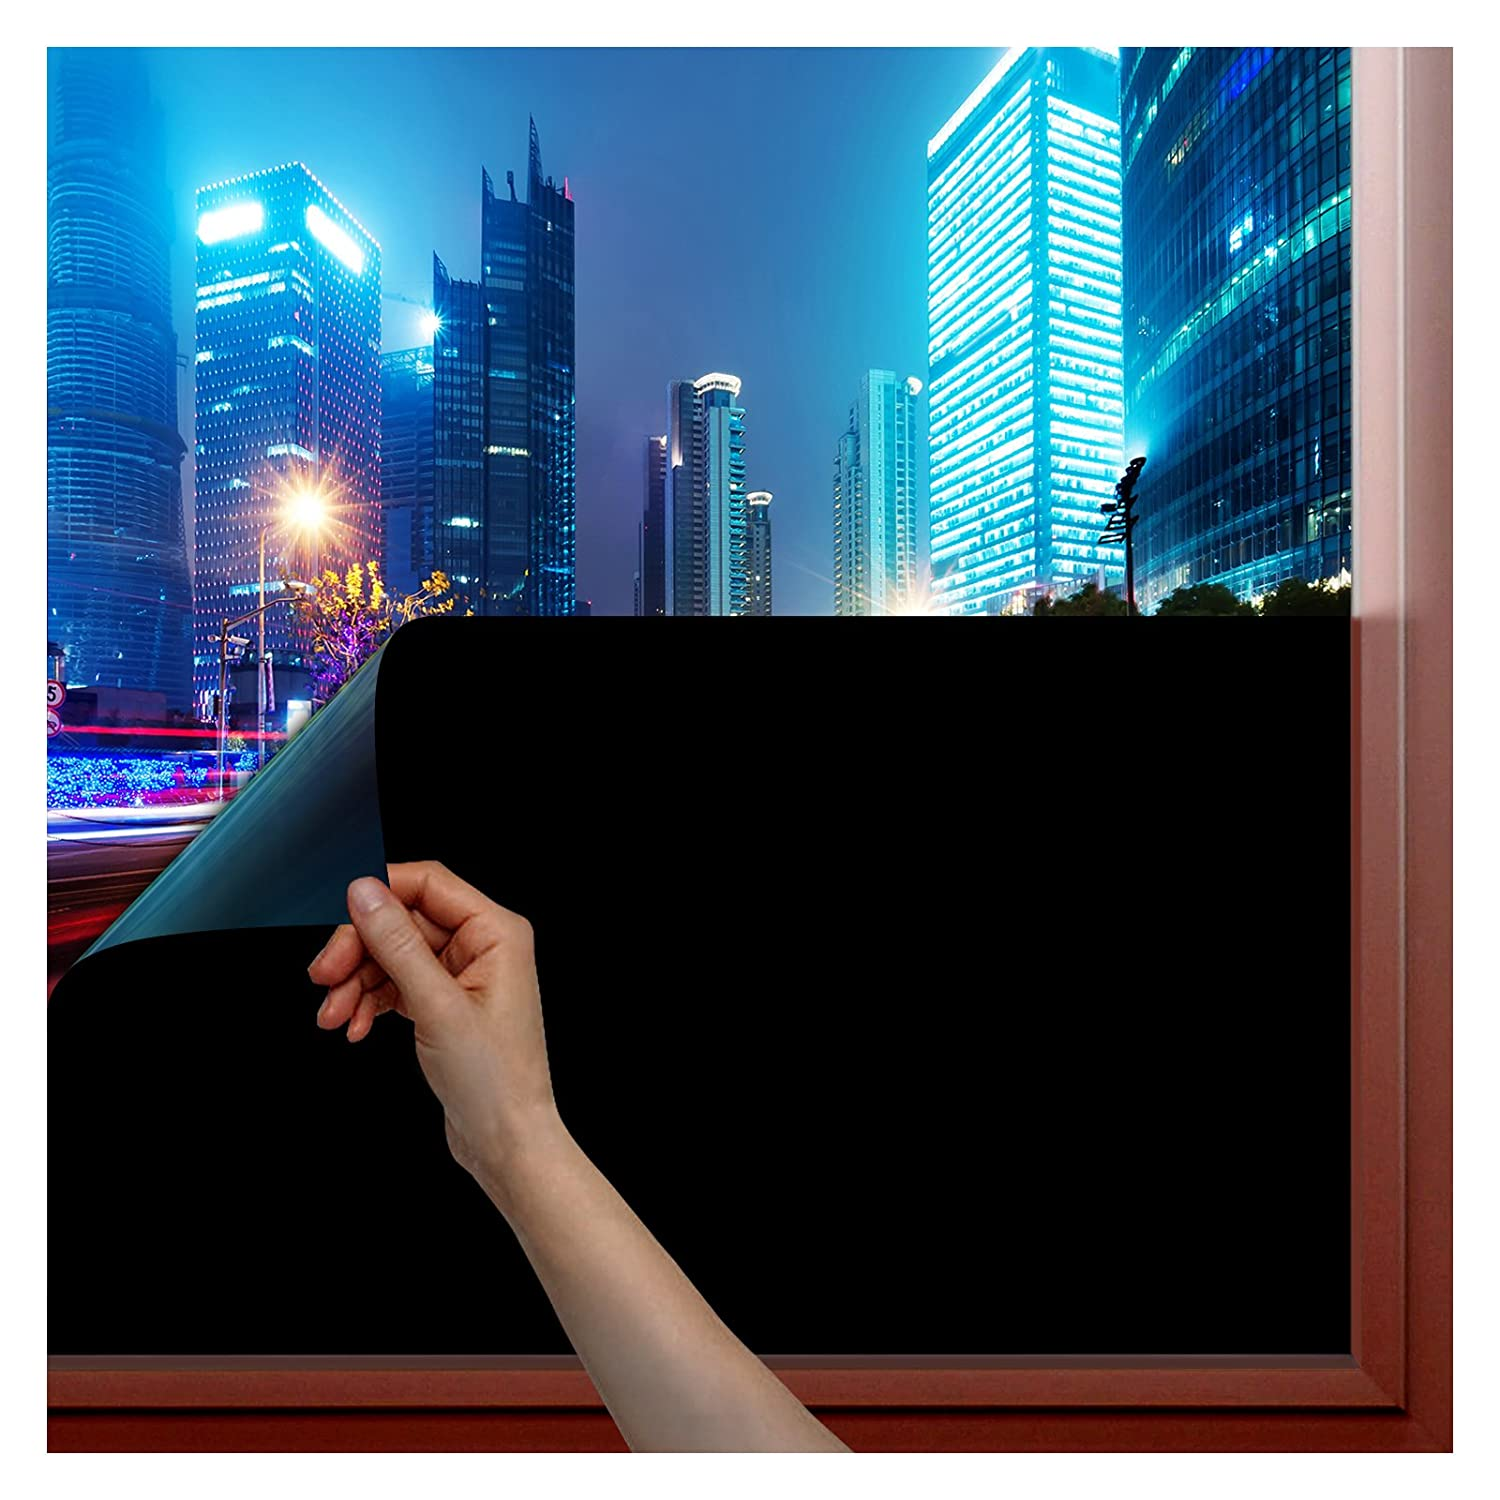 BDF 1BKOT Window Film Blackout (Non Adhesive Static Cling) 100% Light Blocking - Easy Installation, Removal & No Residue- 36in X 14ft